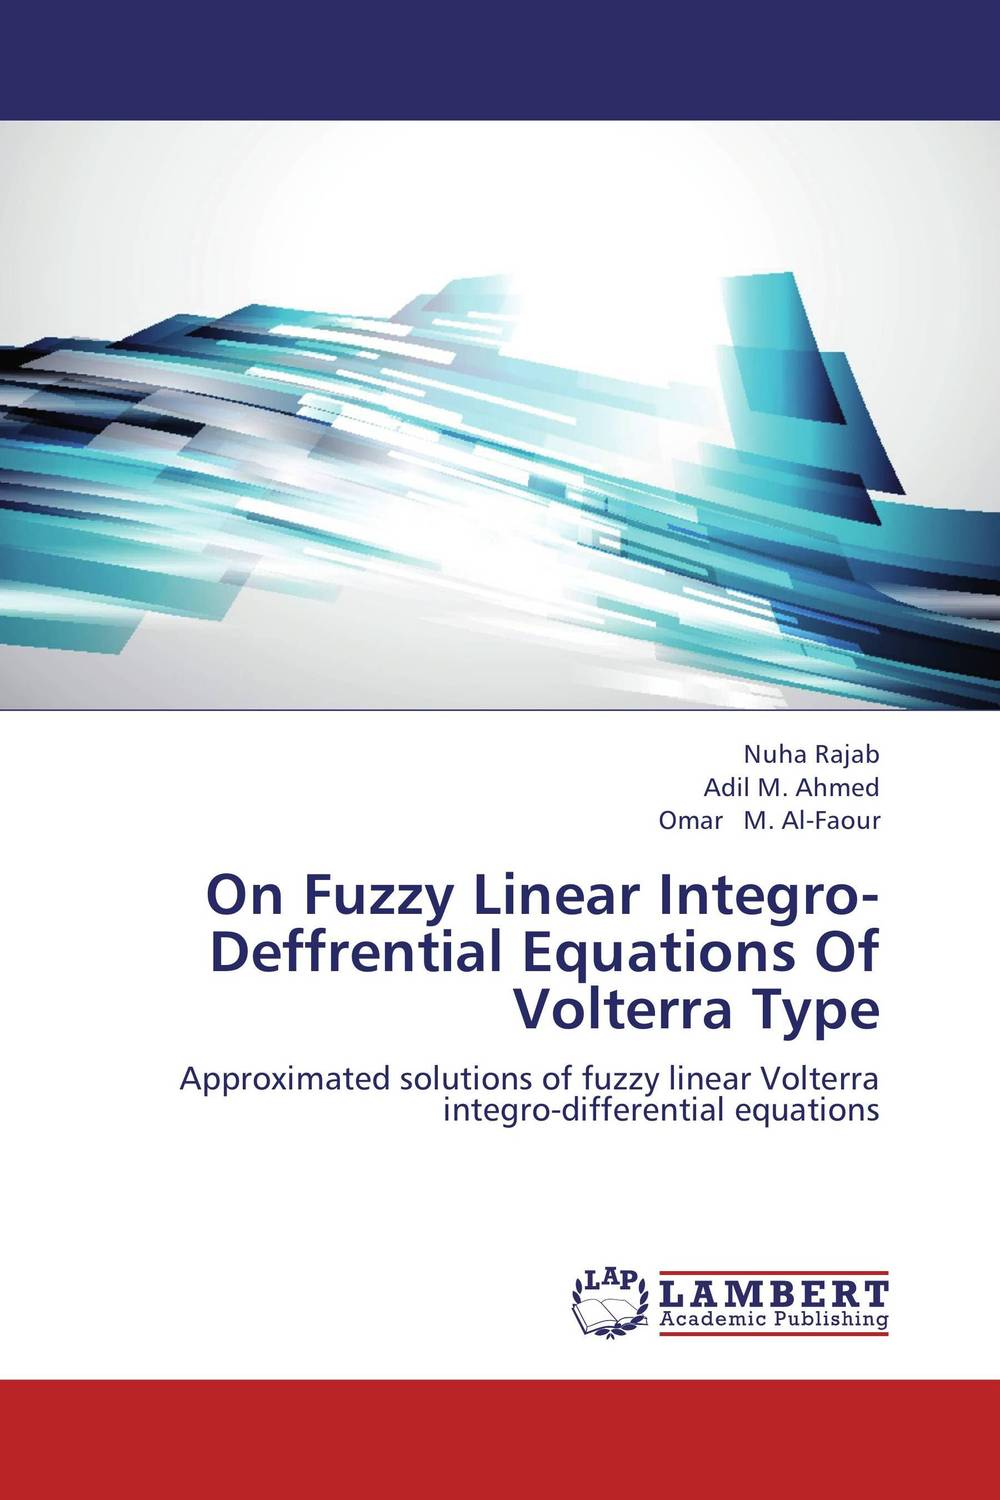 On Fuzzy Linear Integro-Deffrential Equations Of Volterra Type collocation methods for volterra integral and related functional differential equations